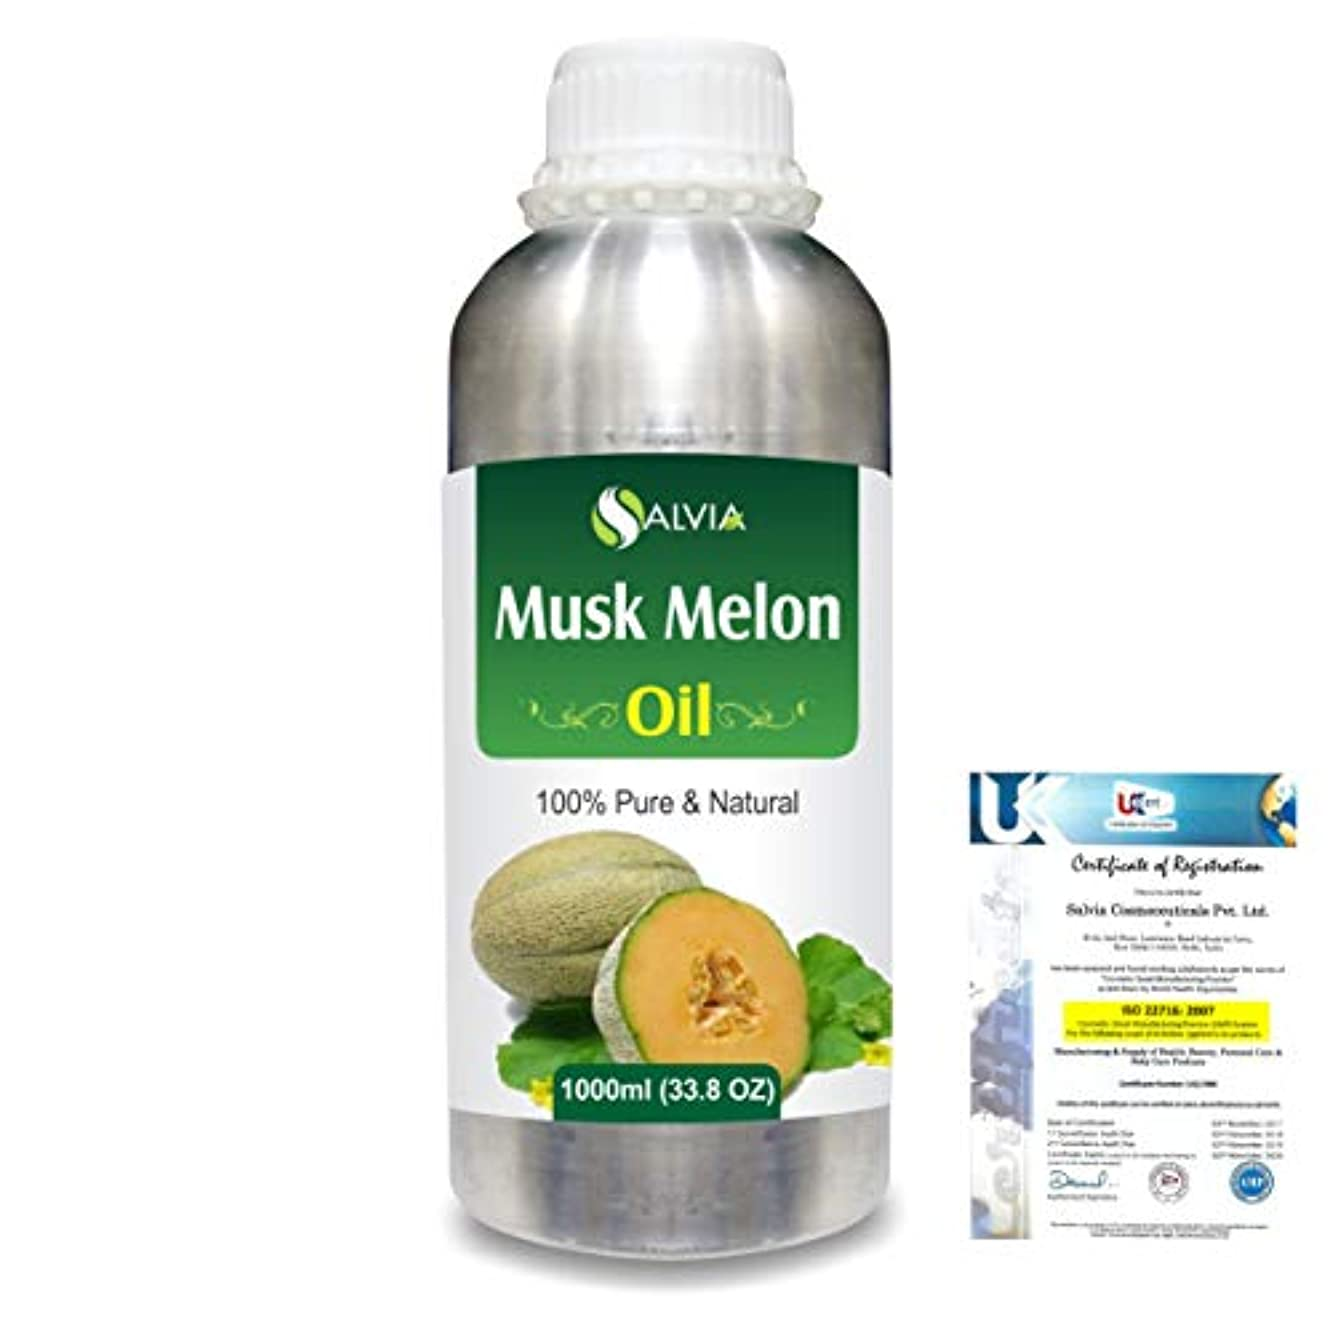 多くの危険がある状況ドナウ川クラシカルMusk Melon (Cuvumis Melon) 100% Pure Natural Carrier Oil 1000ml/33.8fl.oz.